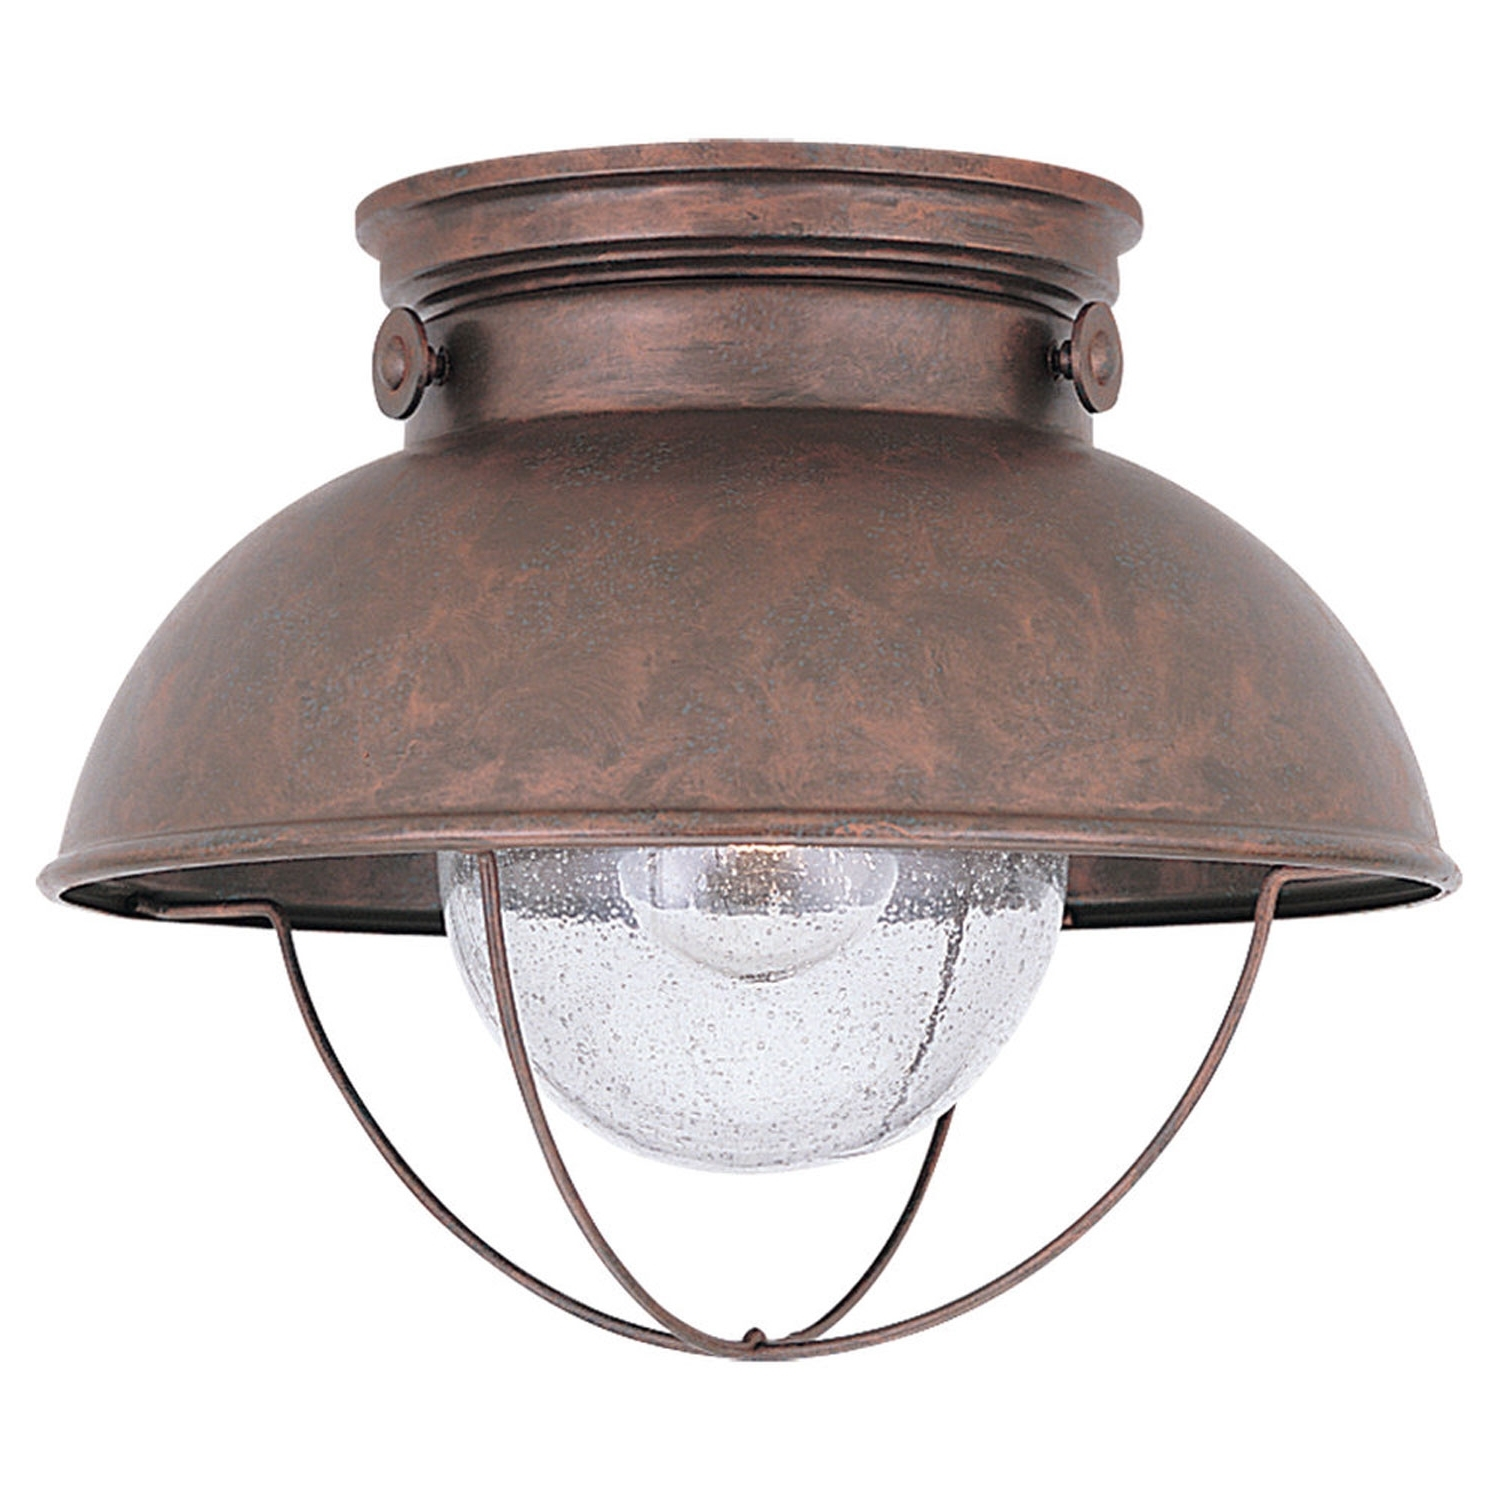 Exterior Light Fixtures In Bronze, Copper In Well Known Decorative Outdoor Ceiling Lights (Gallery 1 of 20)